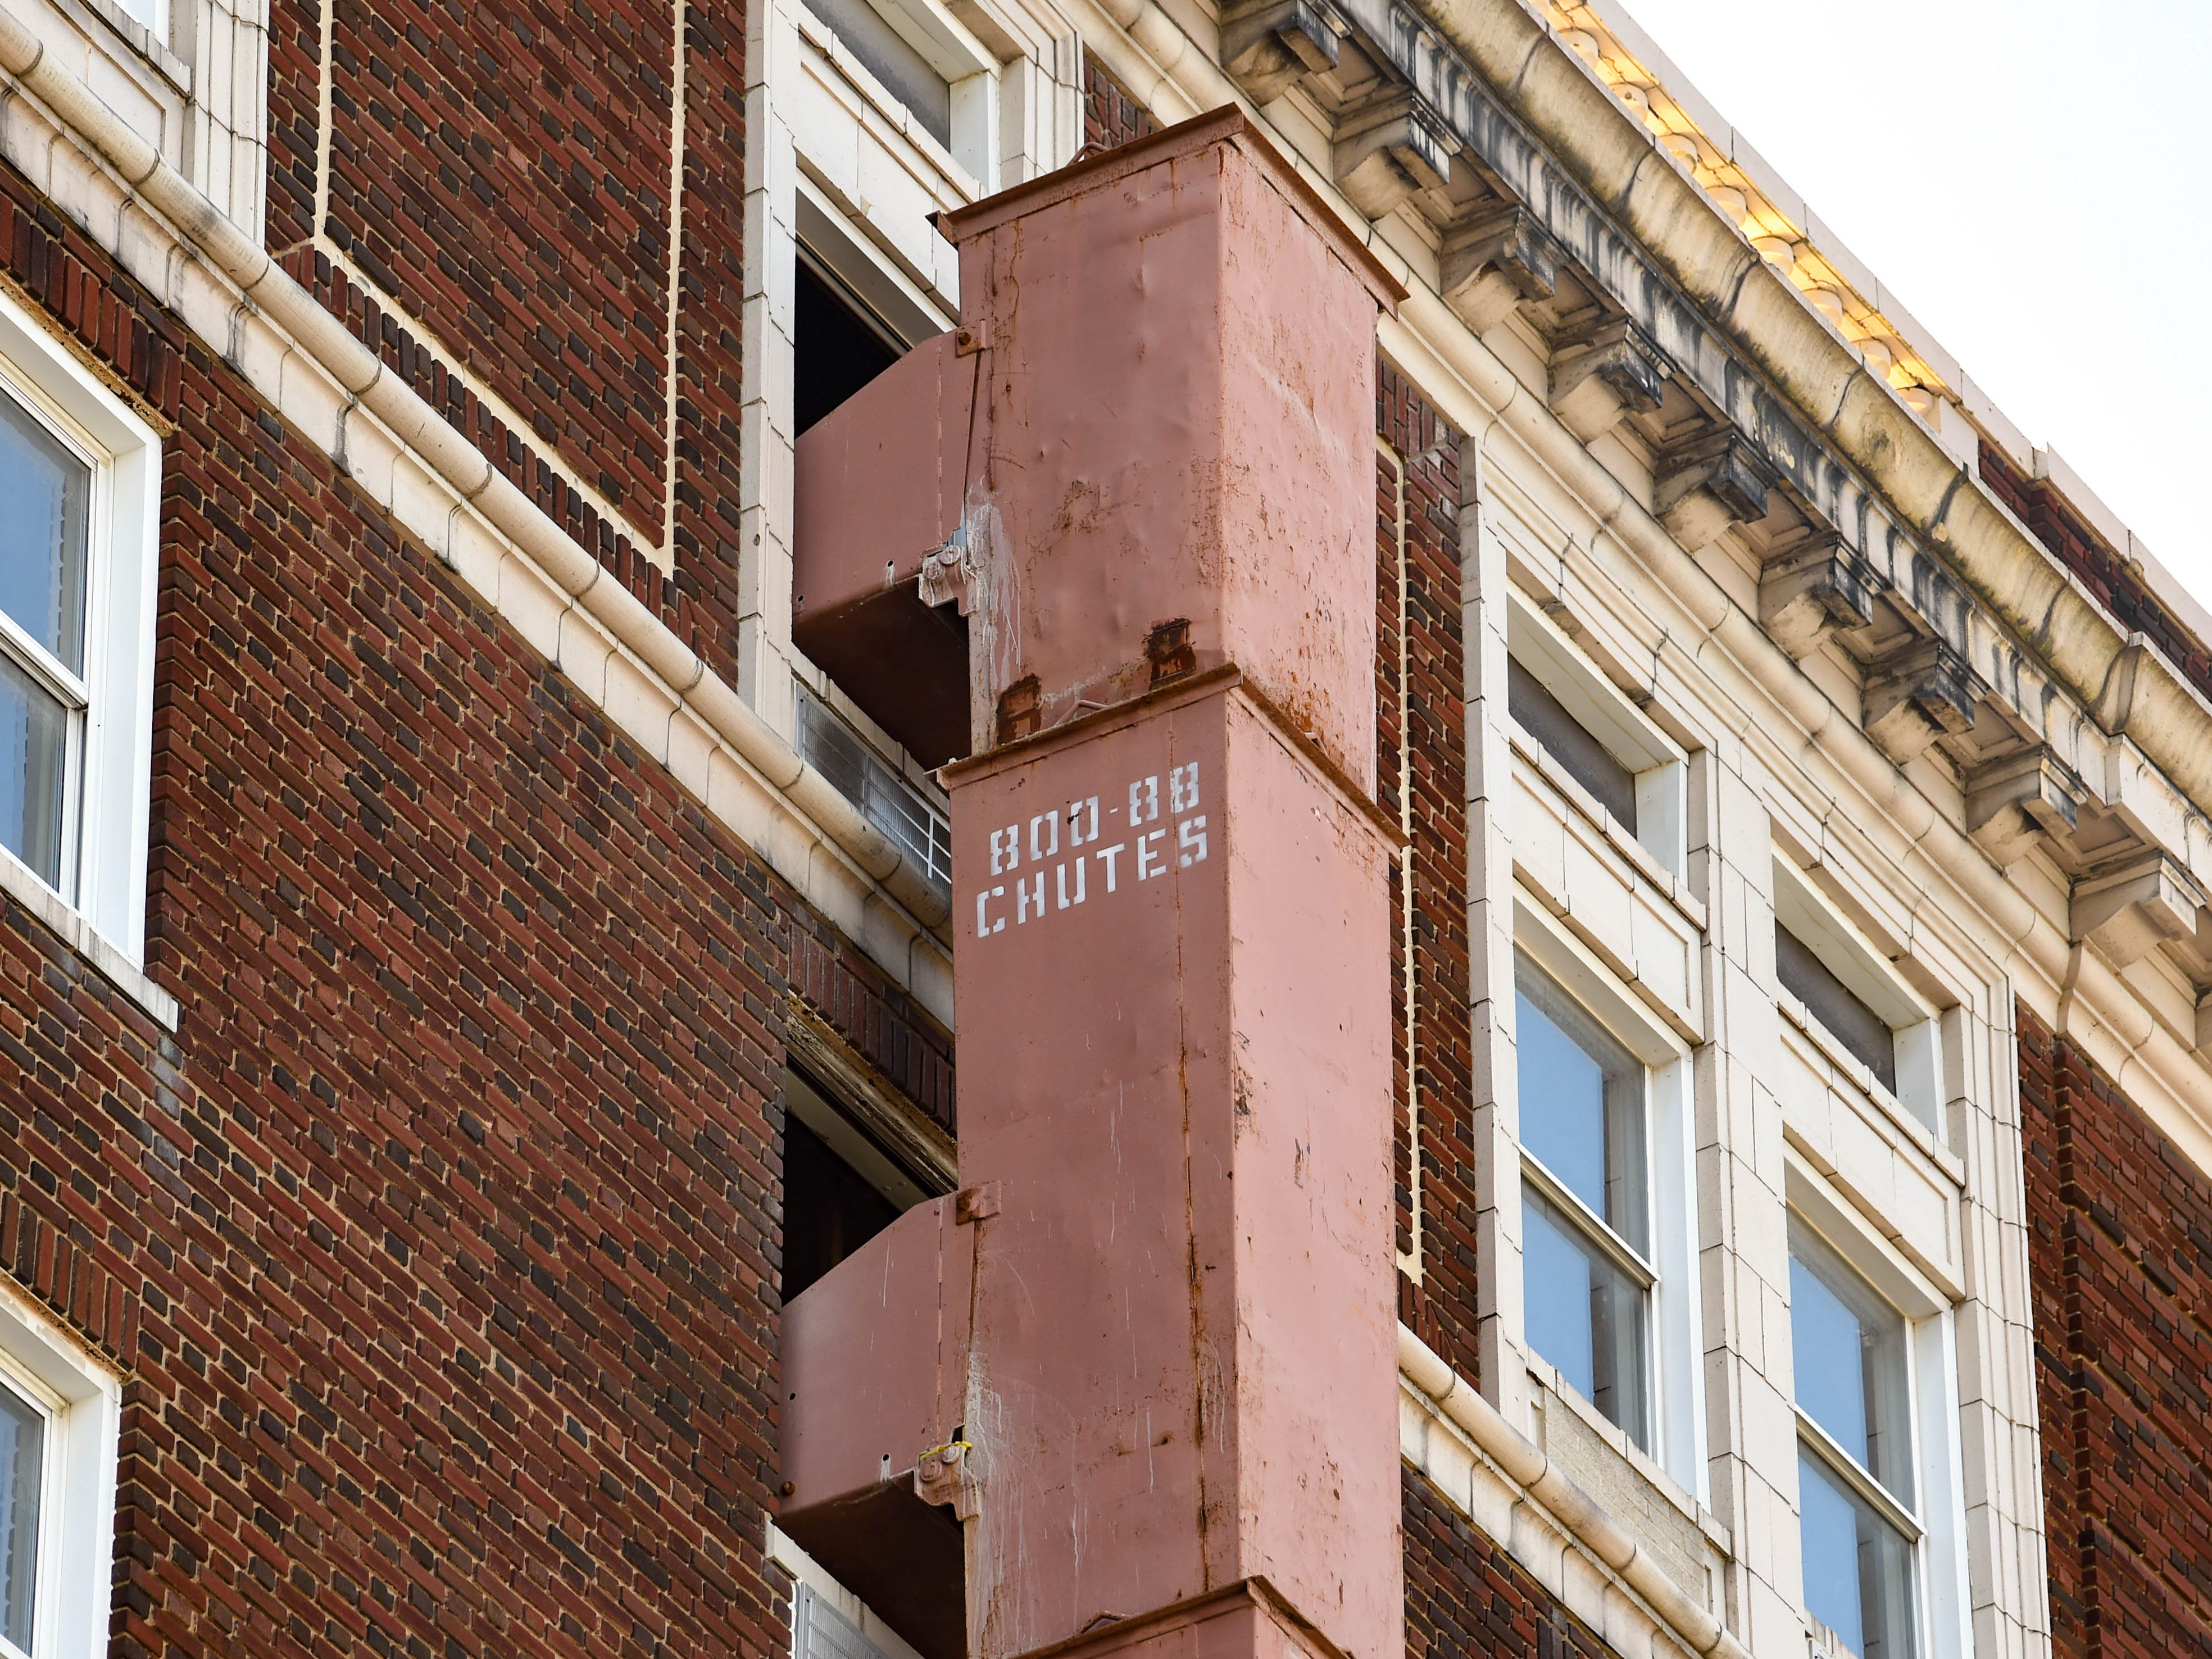 A garbage shoot is attached to the building to provide an easy dumping area for every floor being gutted at the Yorktowne Hotel on October 4, 2018.